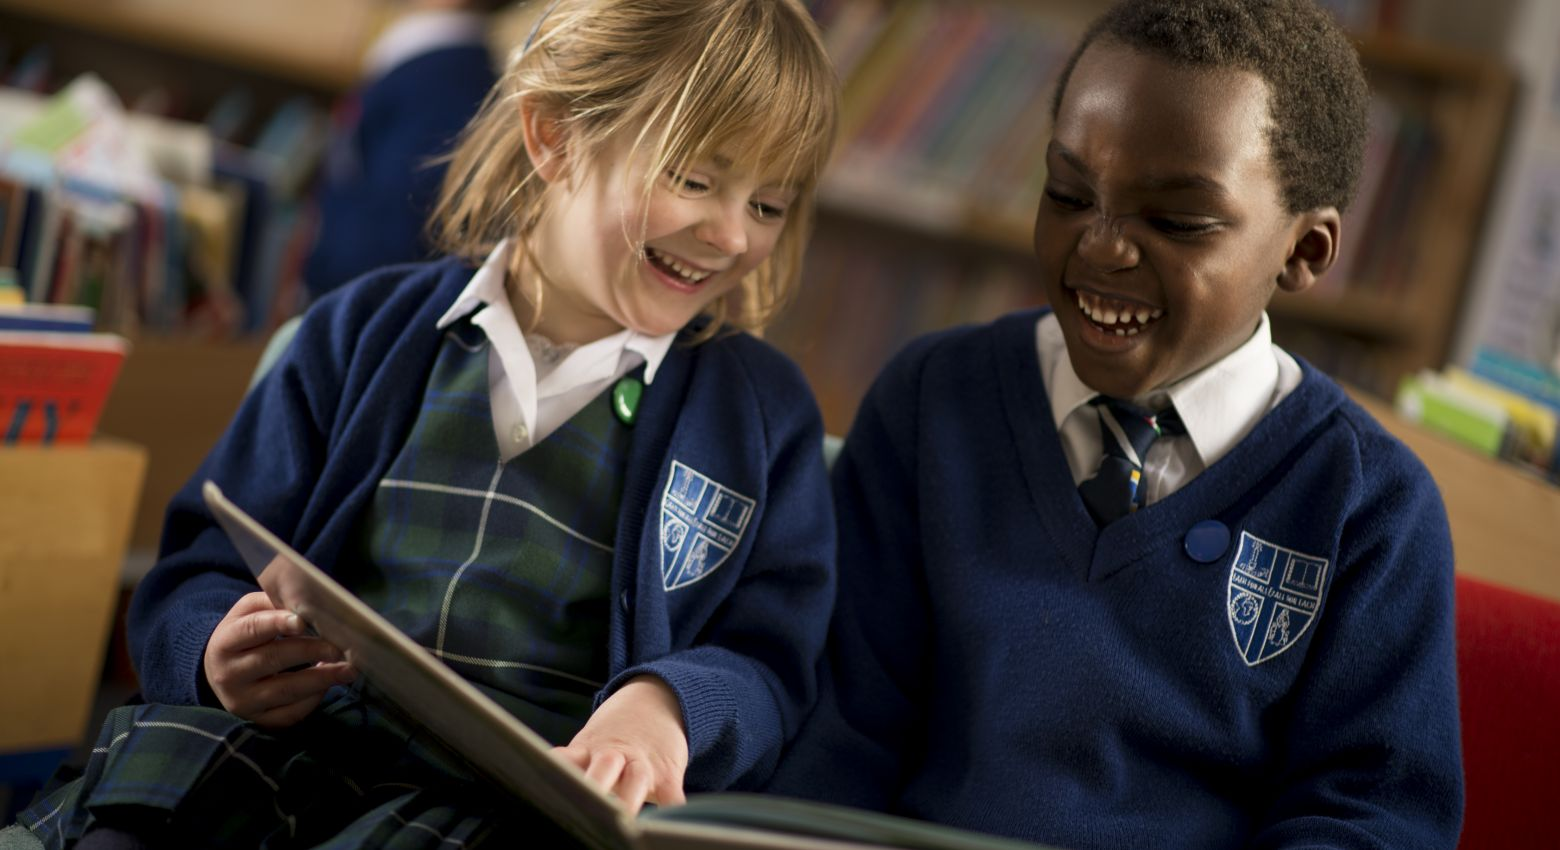 boy and girl laughing at a book